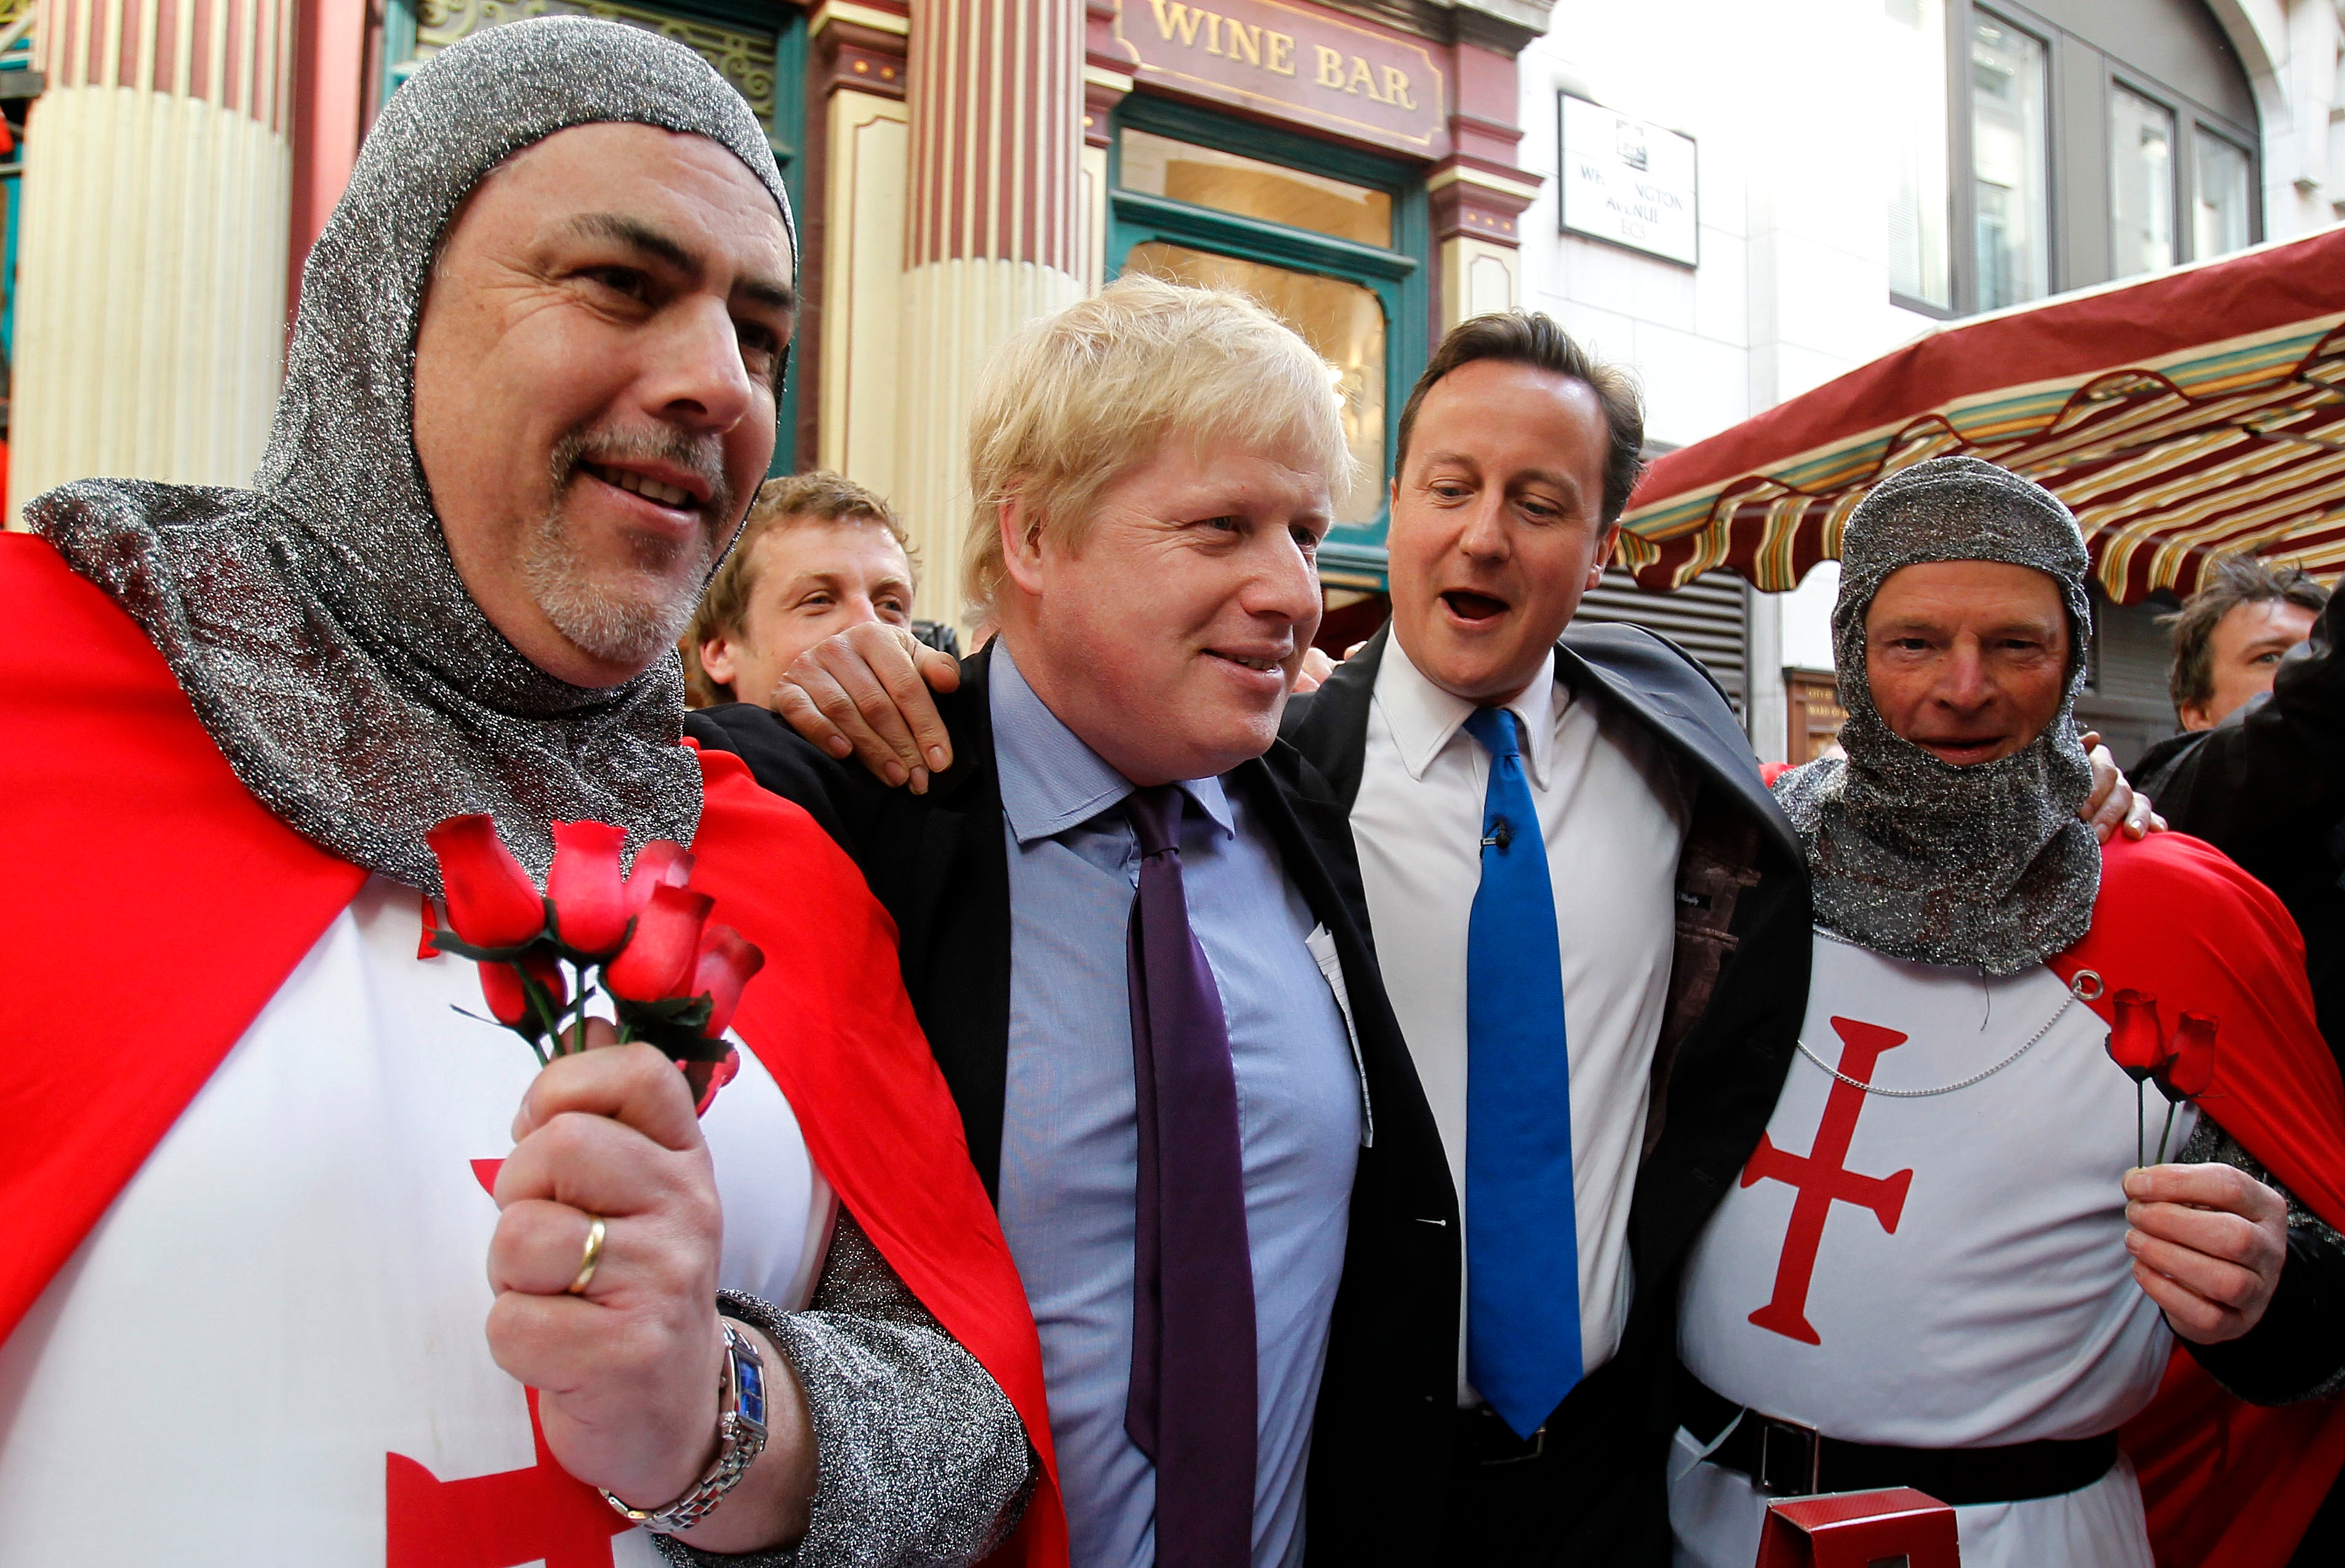 Hunting the home counties for Conservatives' 'swivel-eyed loons'